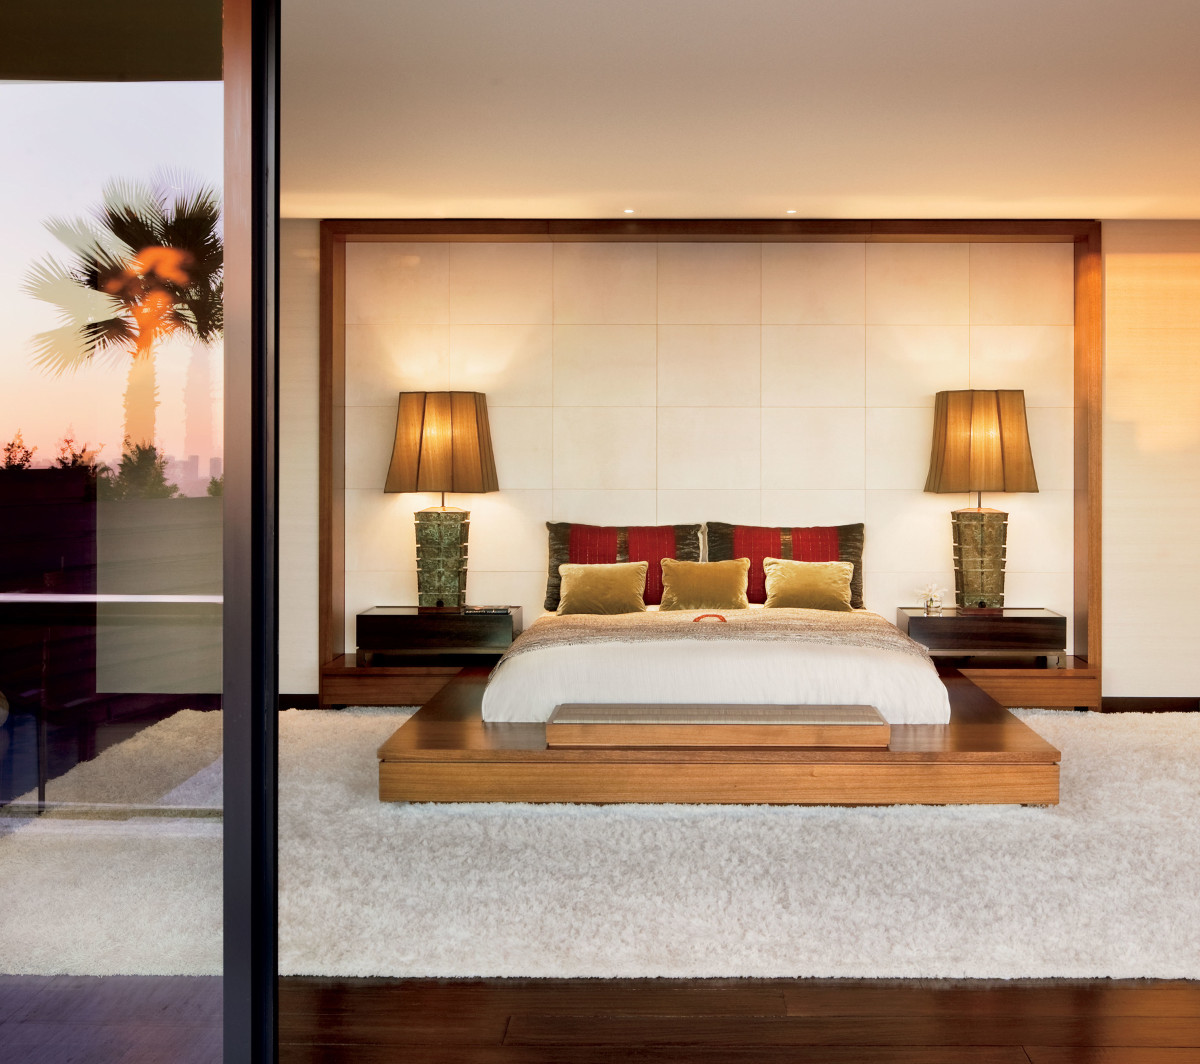 hidden tvs - motorized flip up tv concealed in the base of a platform bed in an Asian inspired Beverly Hills bedroom by Stephen Shadley - AD via Atticmag